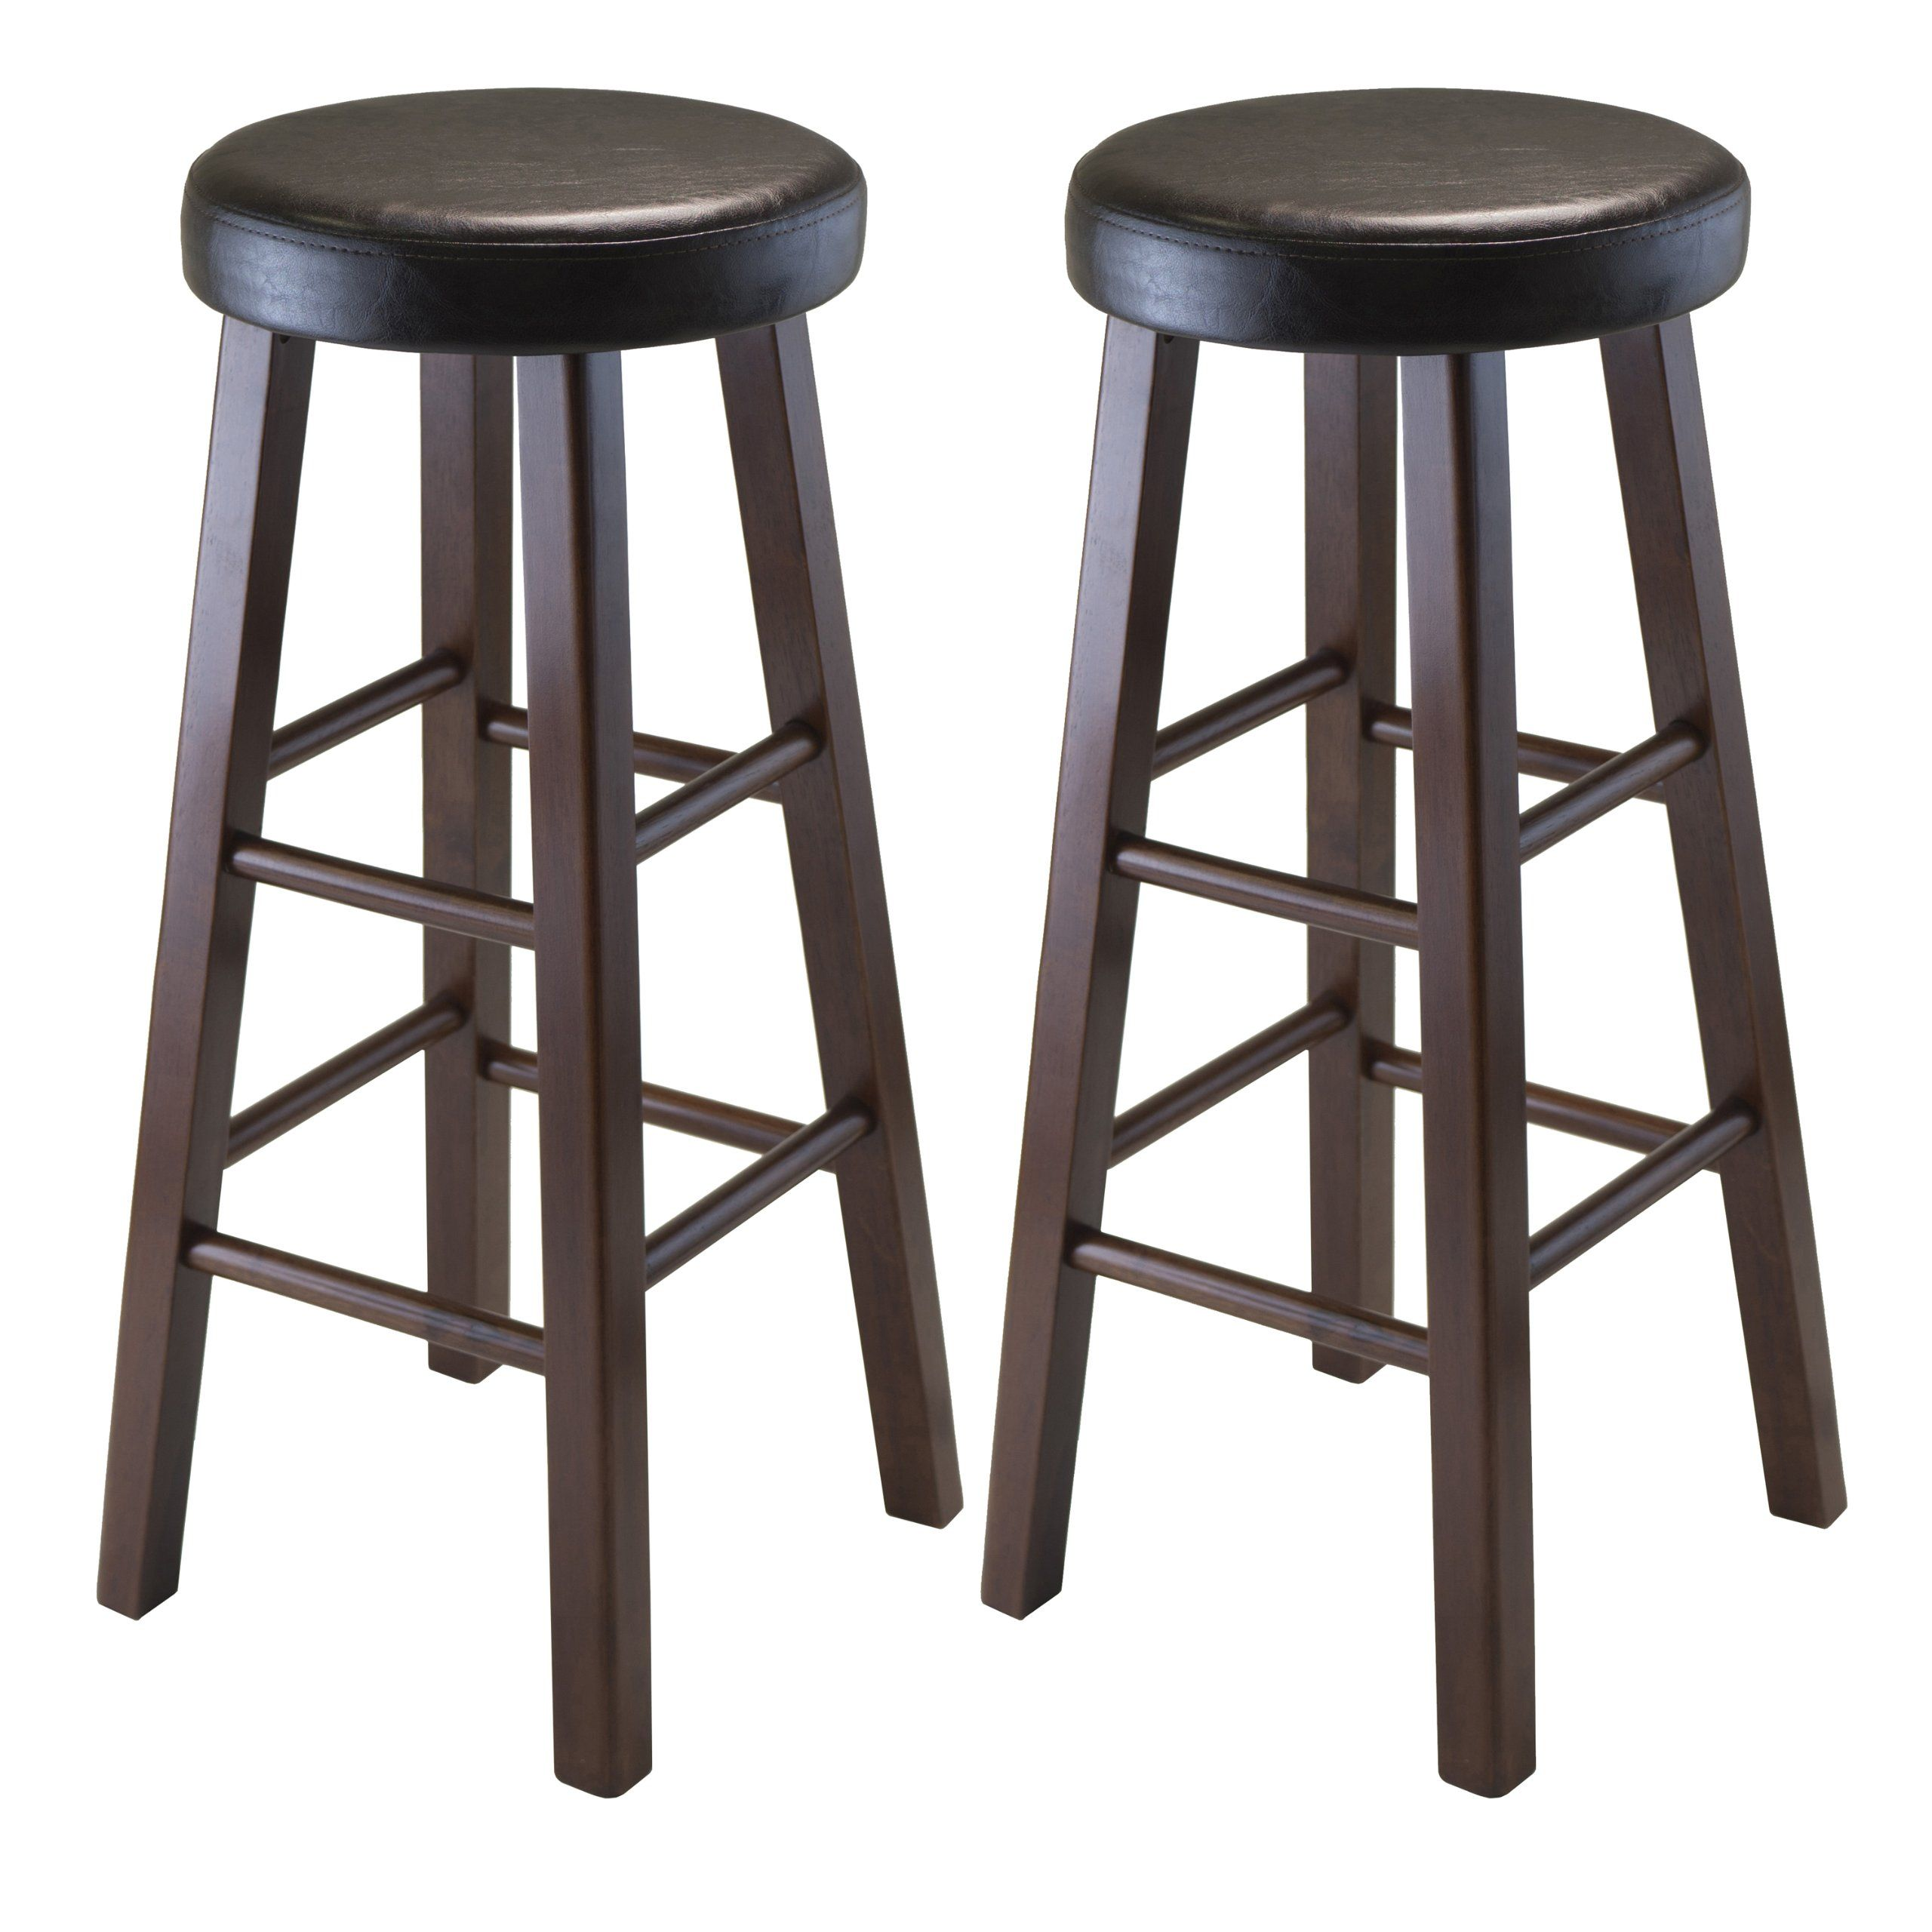 Winsome Wood Marta Assembled Round Bar Stool With Pu Leather Cushion Seat And Square Legs 29 Inch Set Of 2 Bar Stools Round Bar Stools Winsome Wood